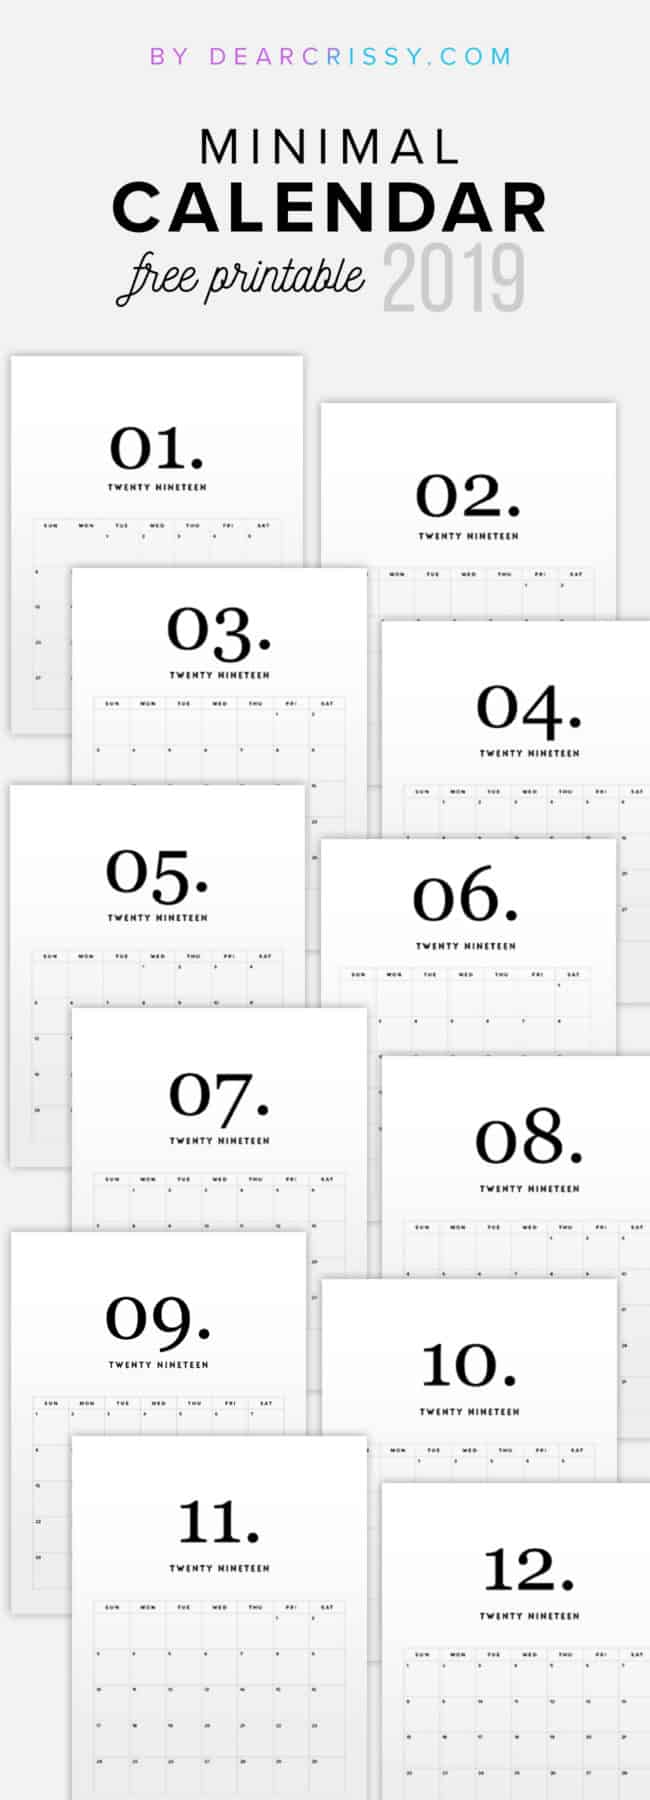 image about Printable Calendar Free named 20 Cost-free Printable Calendars for 2019 - YesMissy